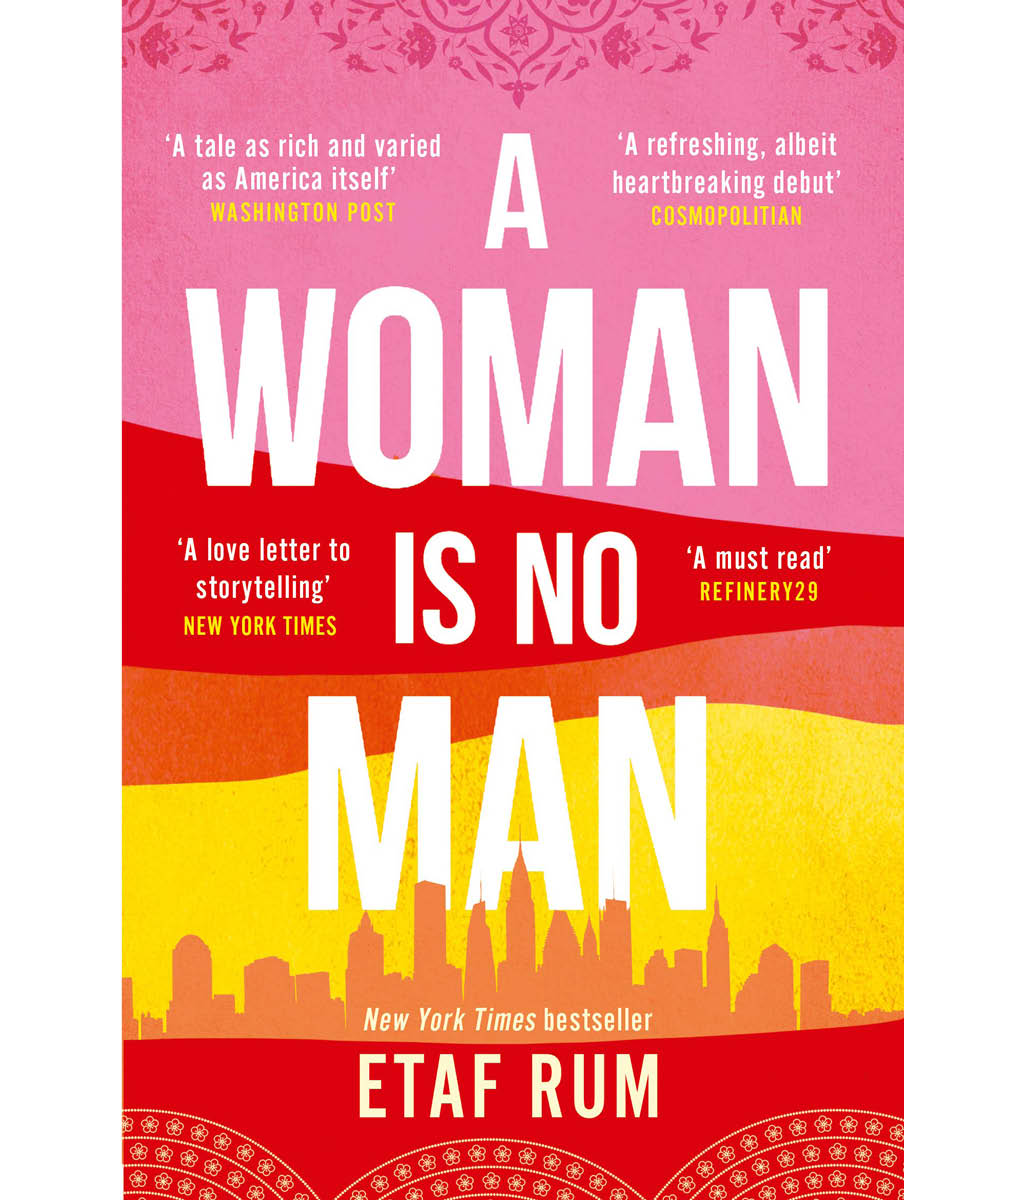 A Woman is No Man Etaf Rum